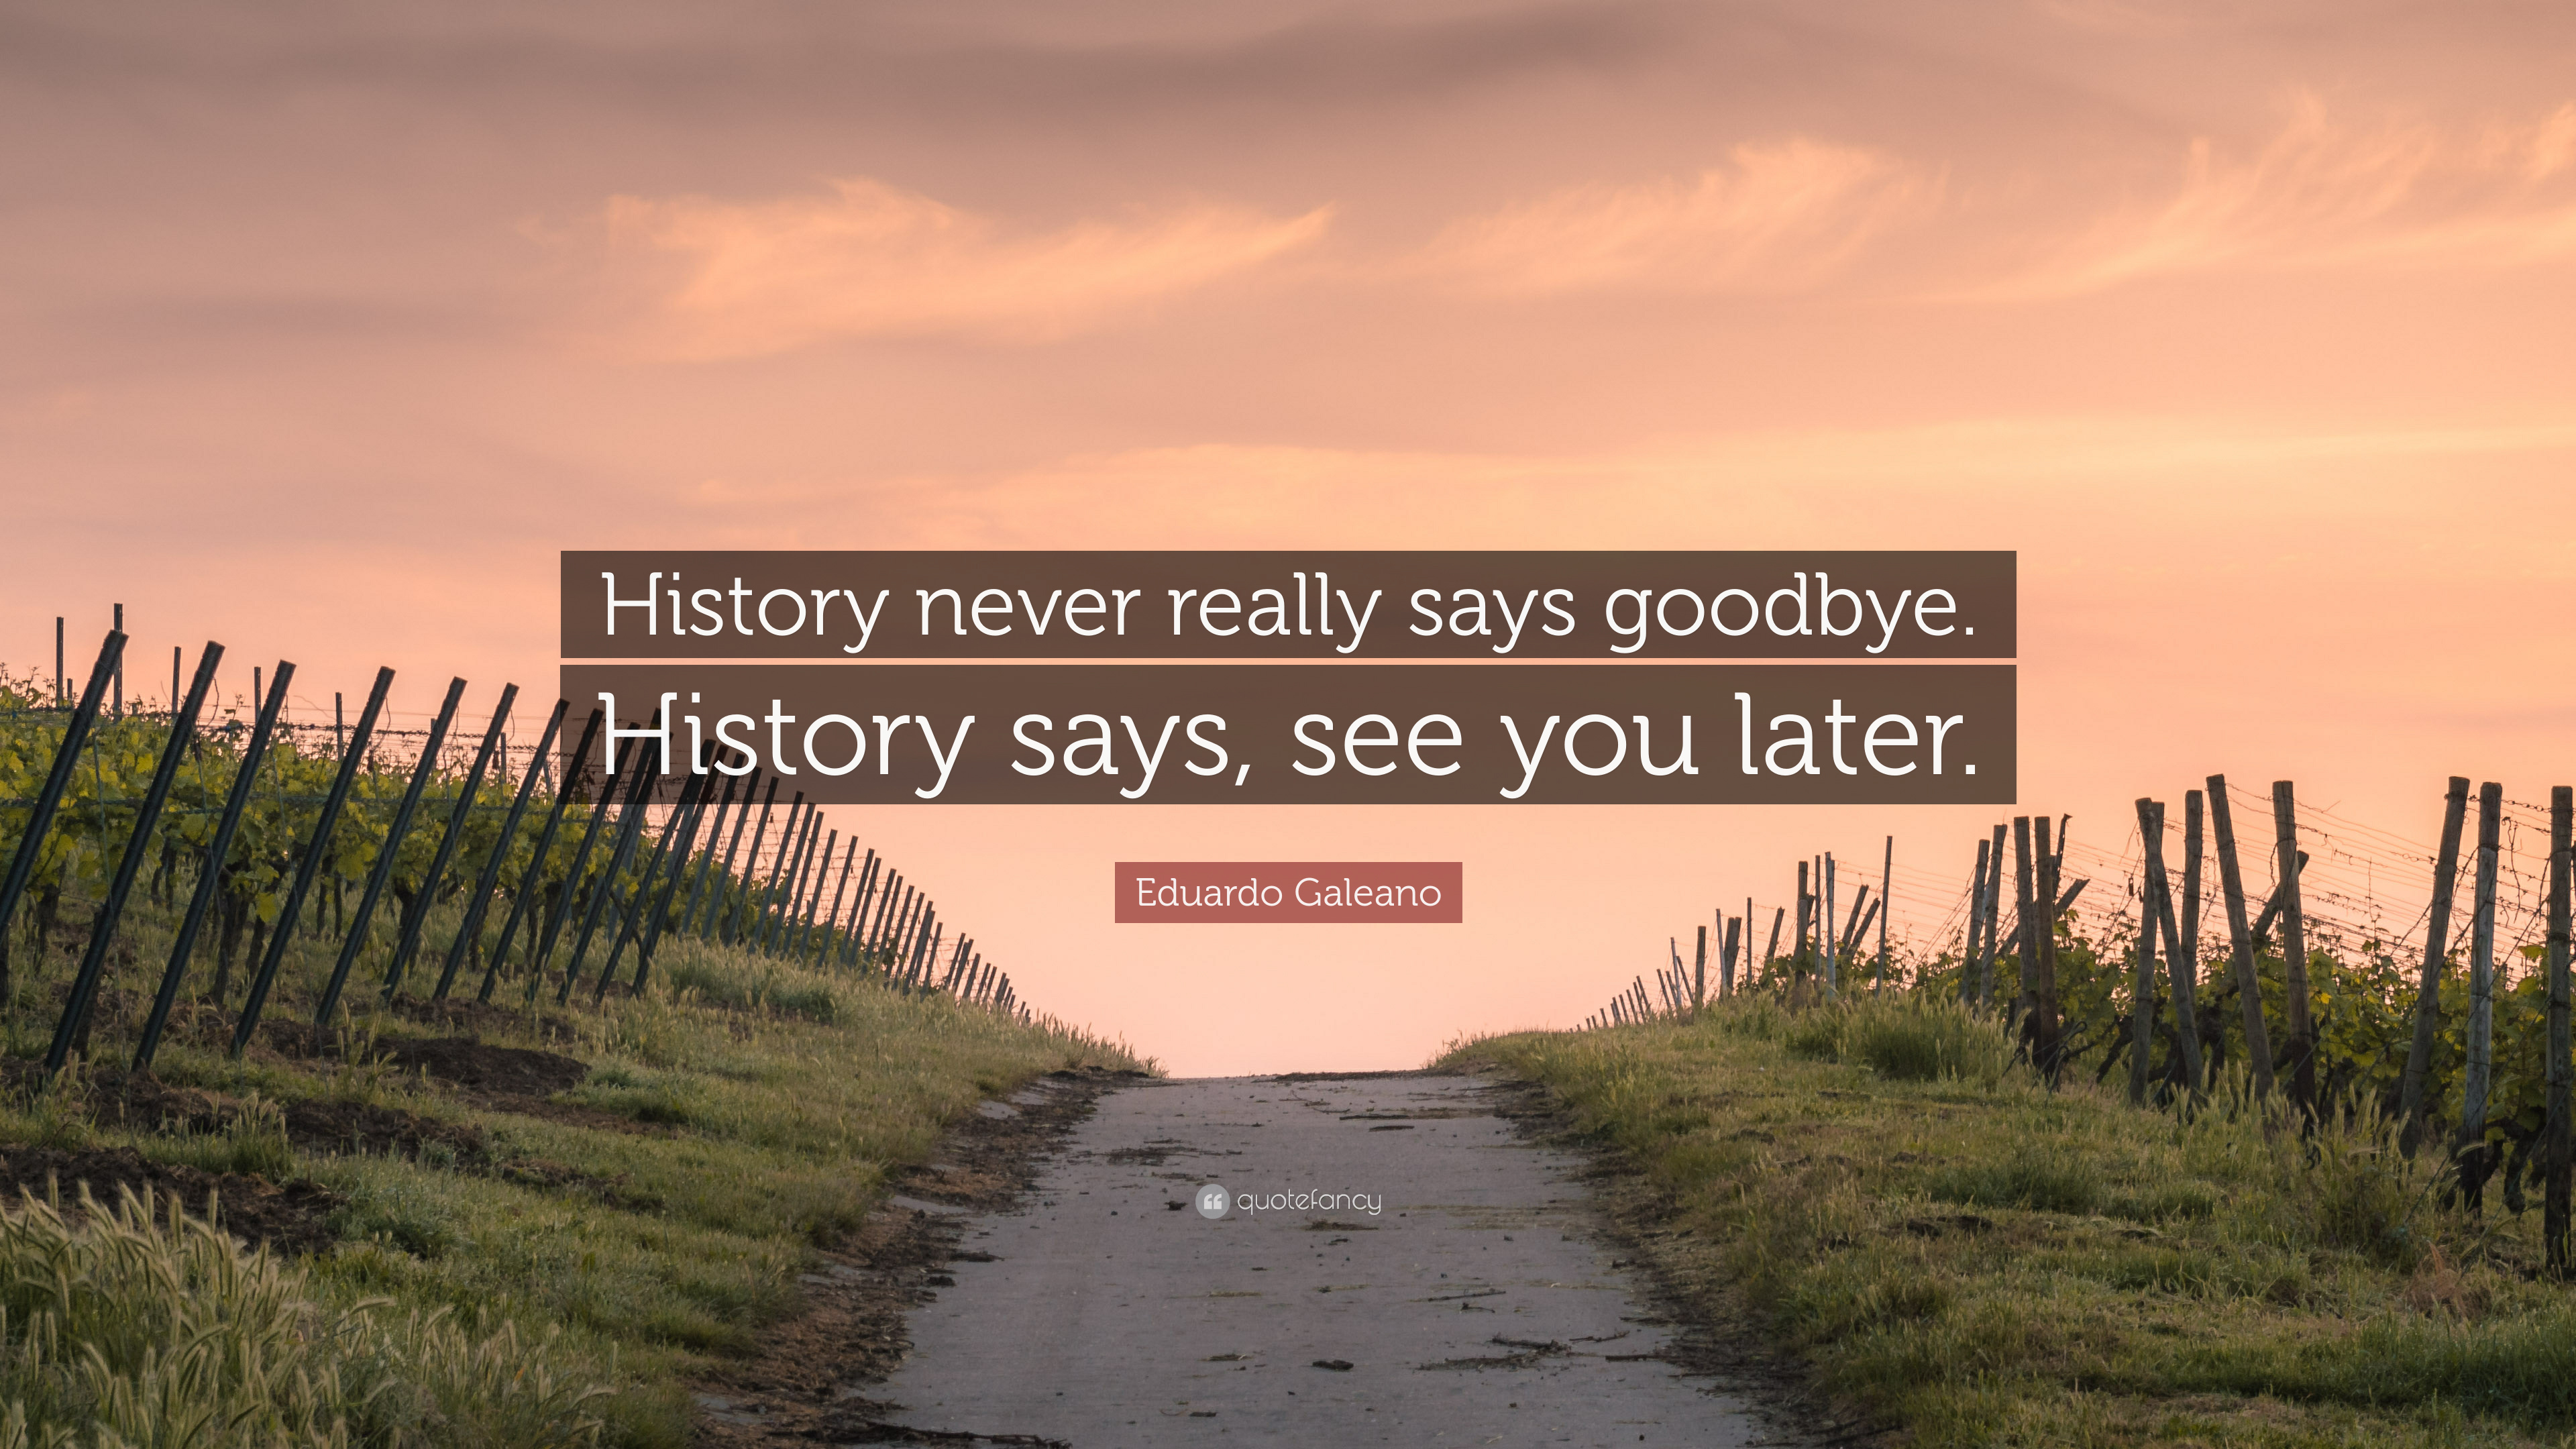 Eduardo Galeano Quote History Never Really Says Goodbye History Says See You Later 9 Wallpapers Quotefancy